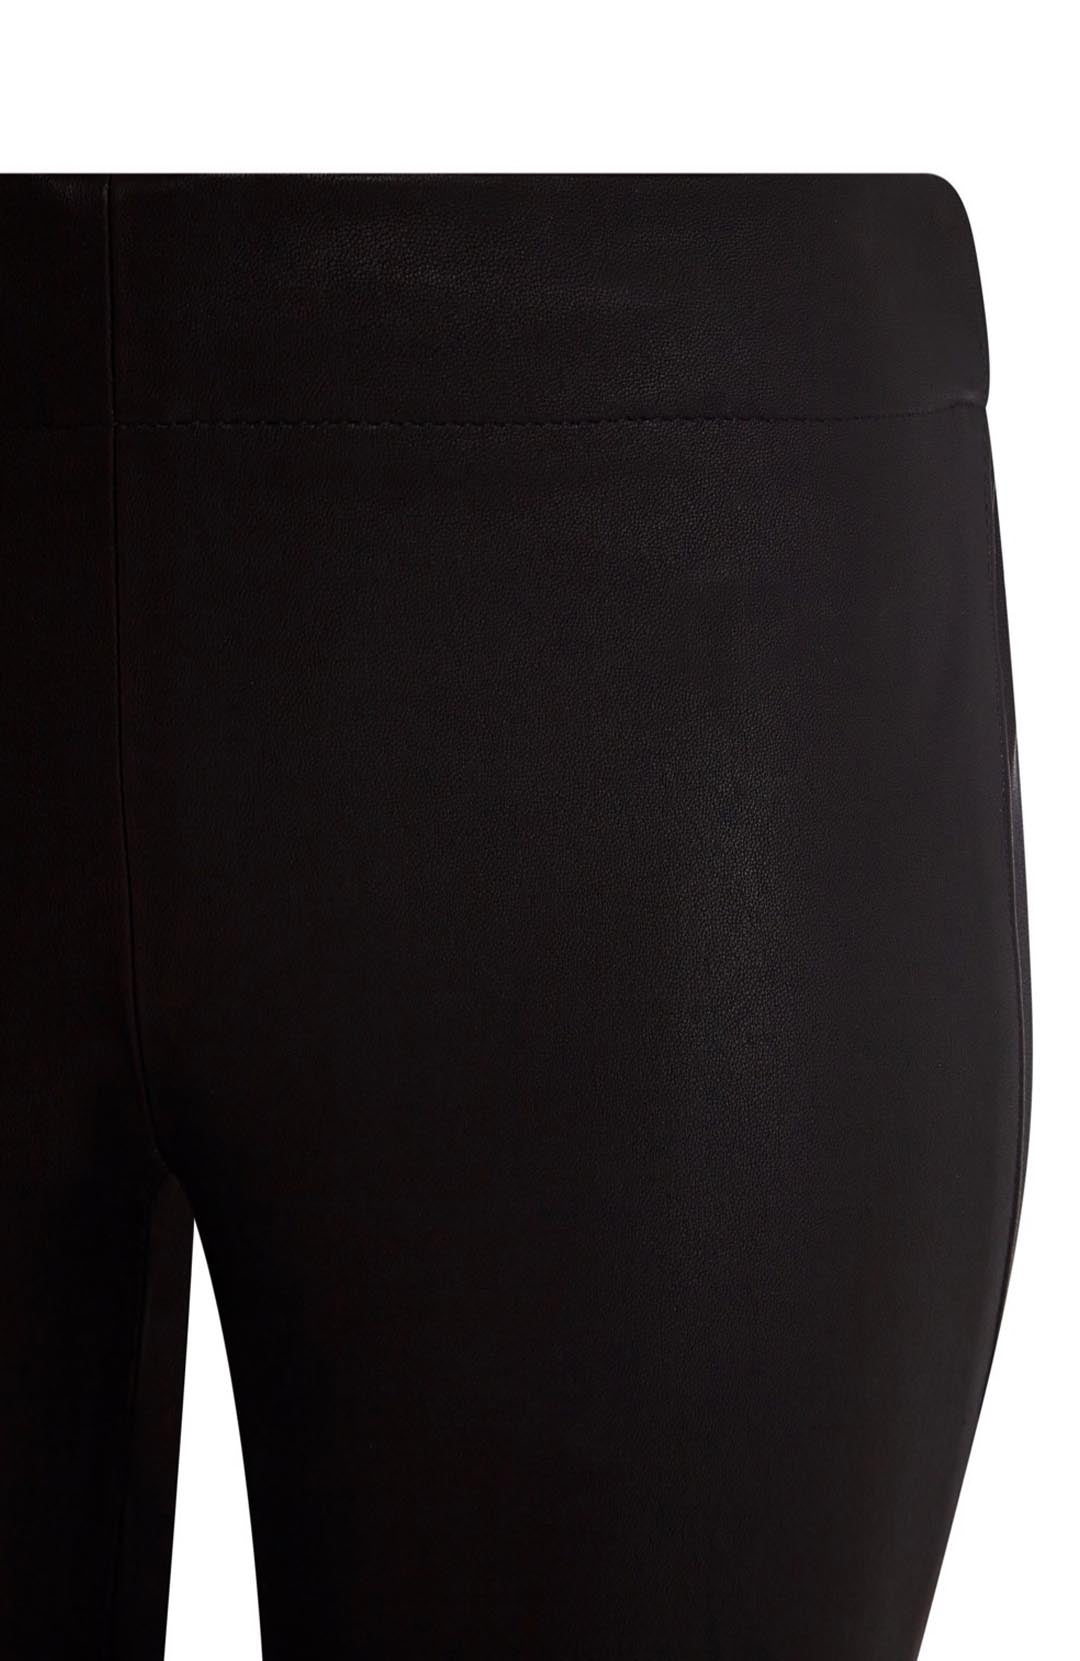 leather leggings for women | leather leggings | leather leggings outfit